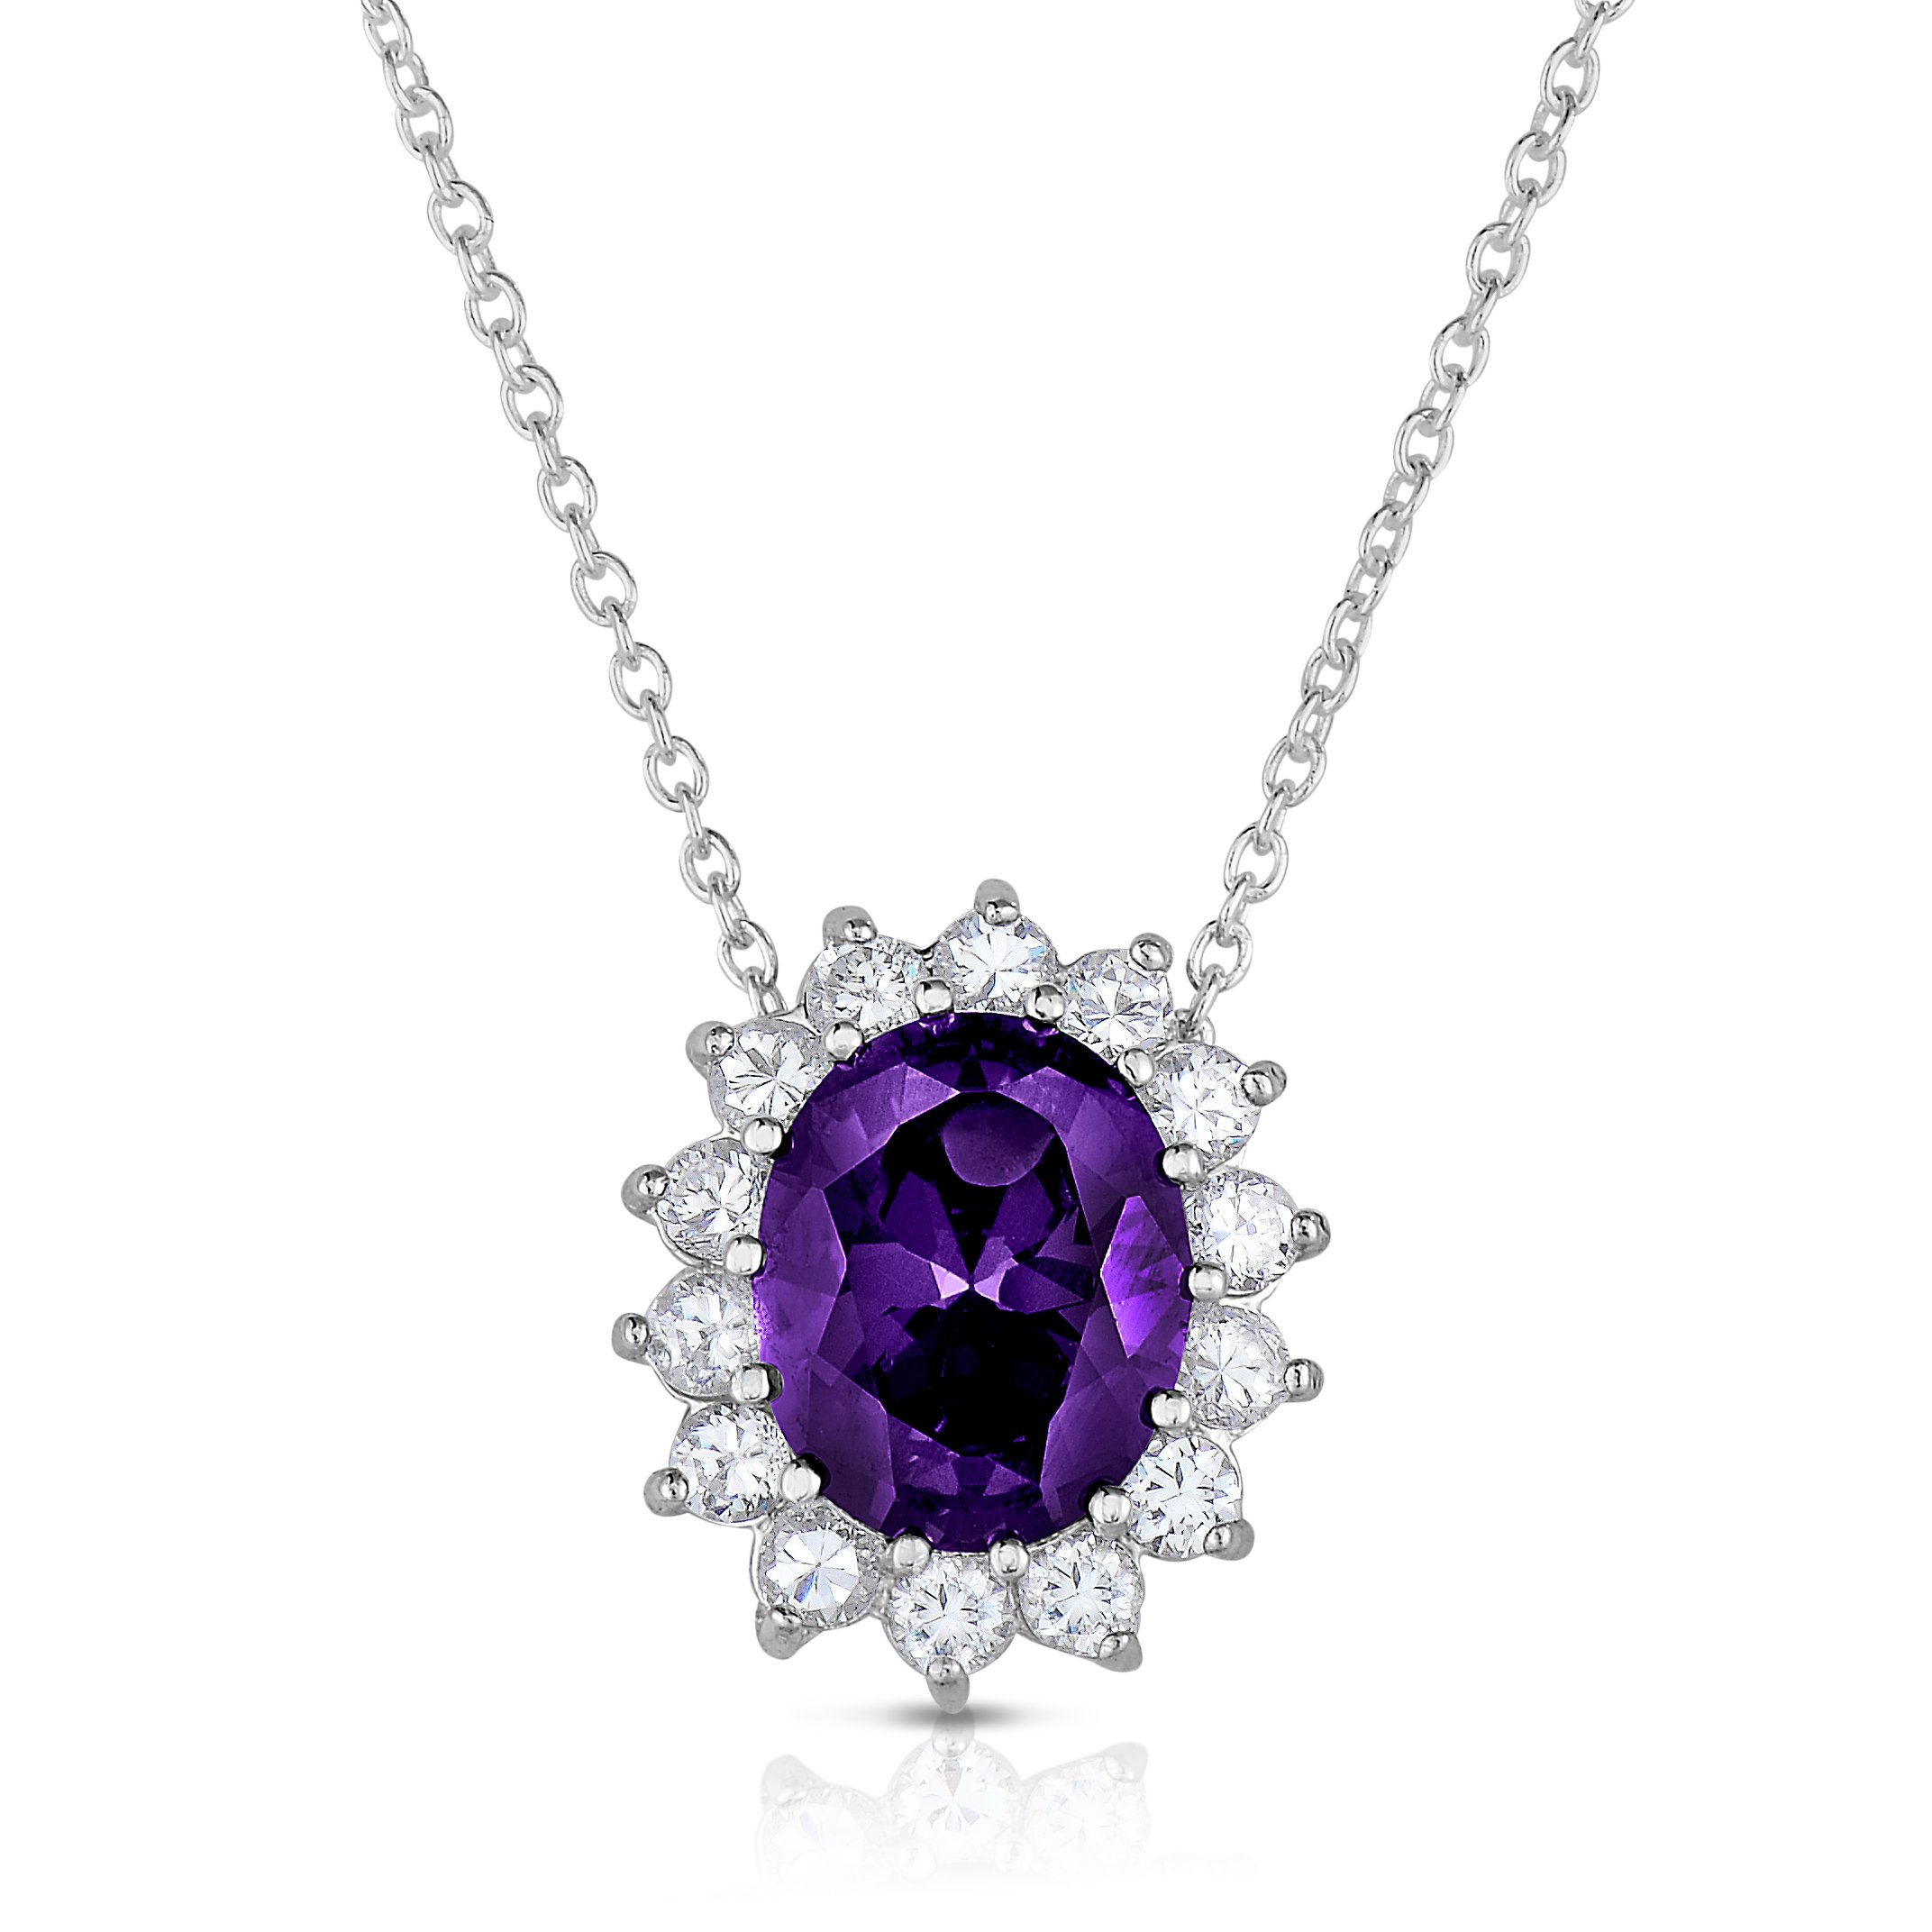 Sterling Silver Purple Amethyst CZ with White CZ Helo Jacket Princess Diana Kate Middleton Necklace and Pendant - 18''